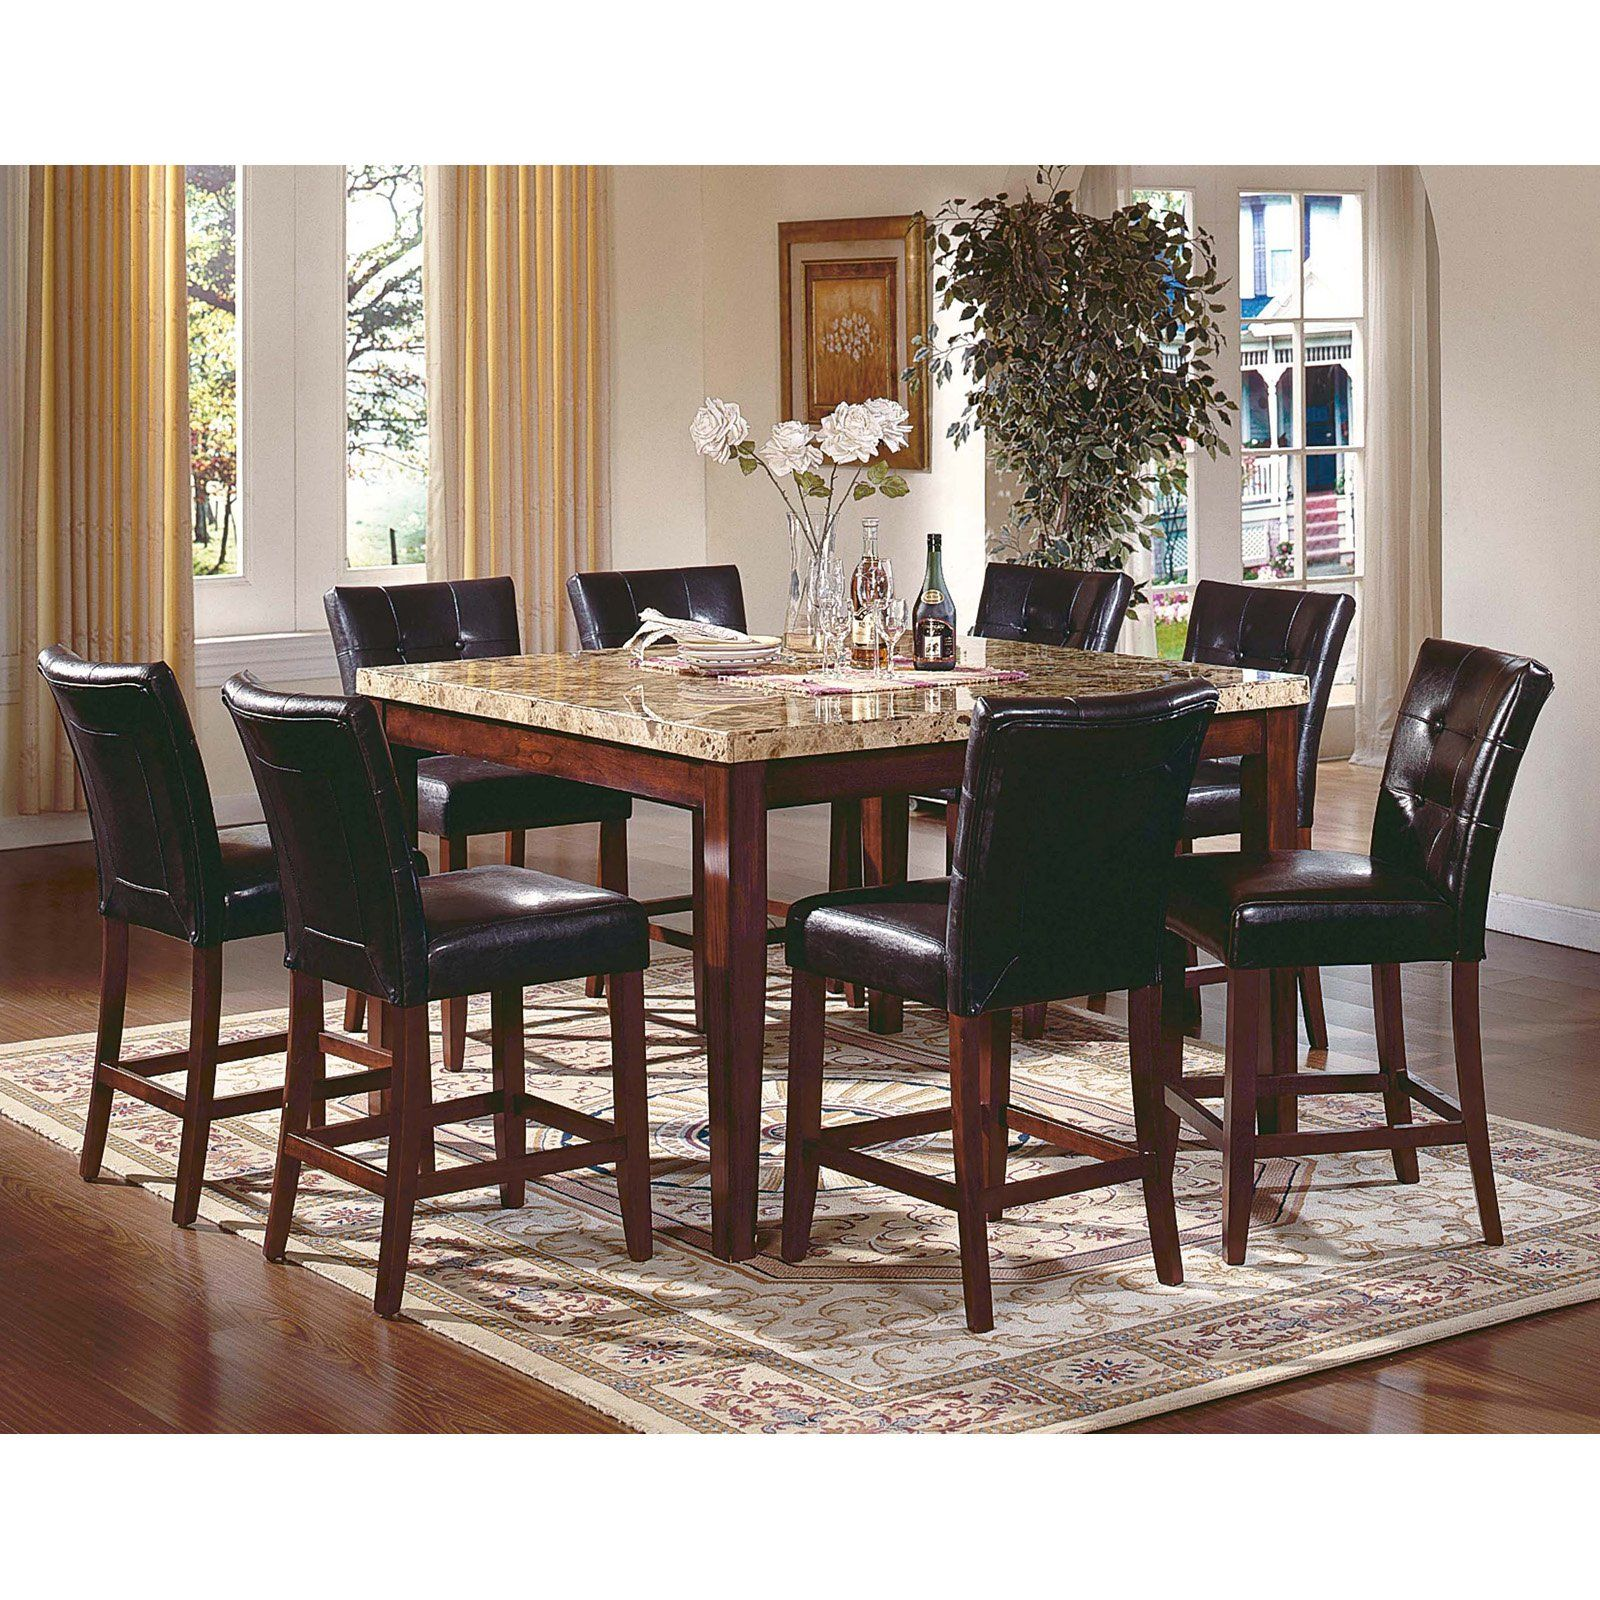 Have To Have It Steve Silver Montibello 7 Piece Marble Top Counter Height Square Dining Table Dining Table Marble Square Dining Table Set Square Dining Tables